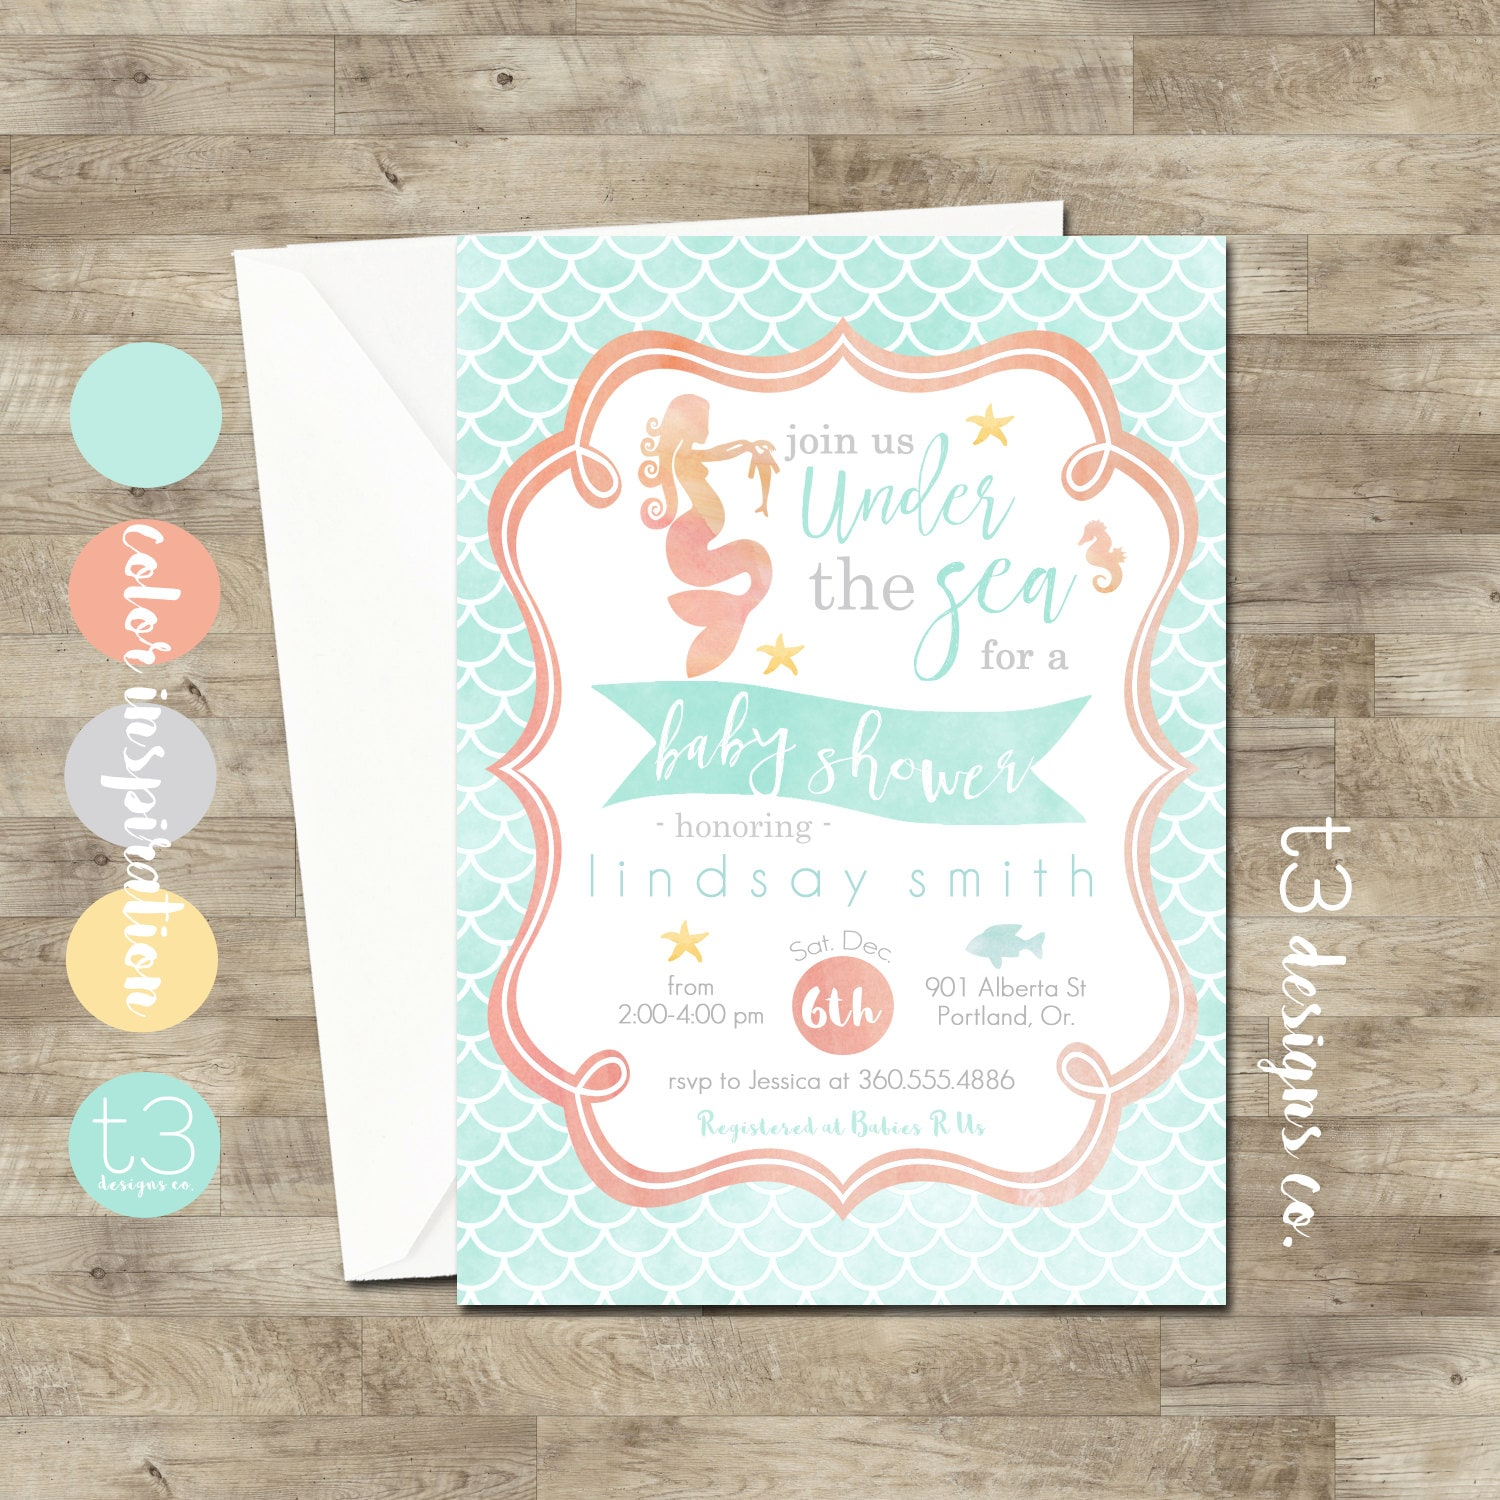 Mermaid Baby Shower Invitations Mermaid Invitation Baby Shower